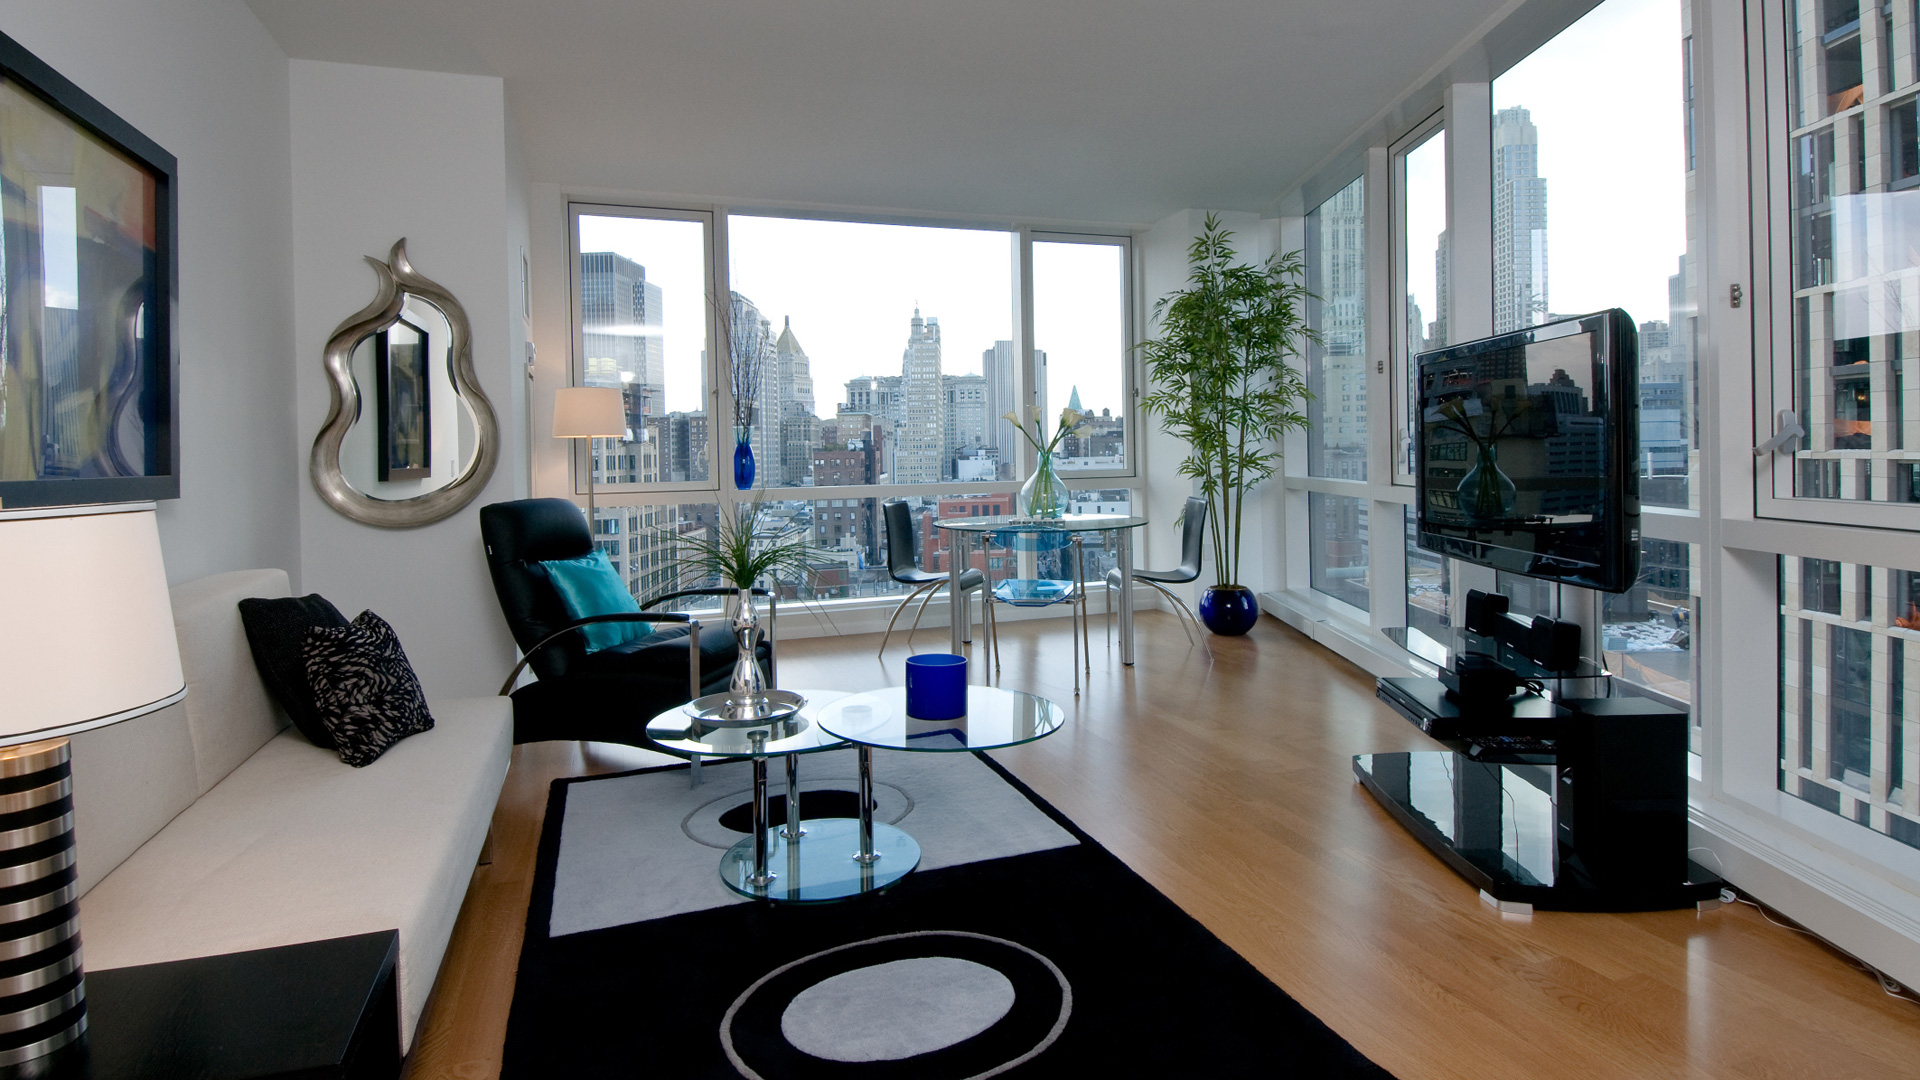 The New York Penthouse